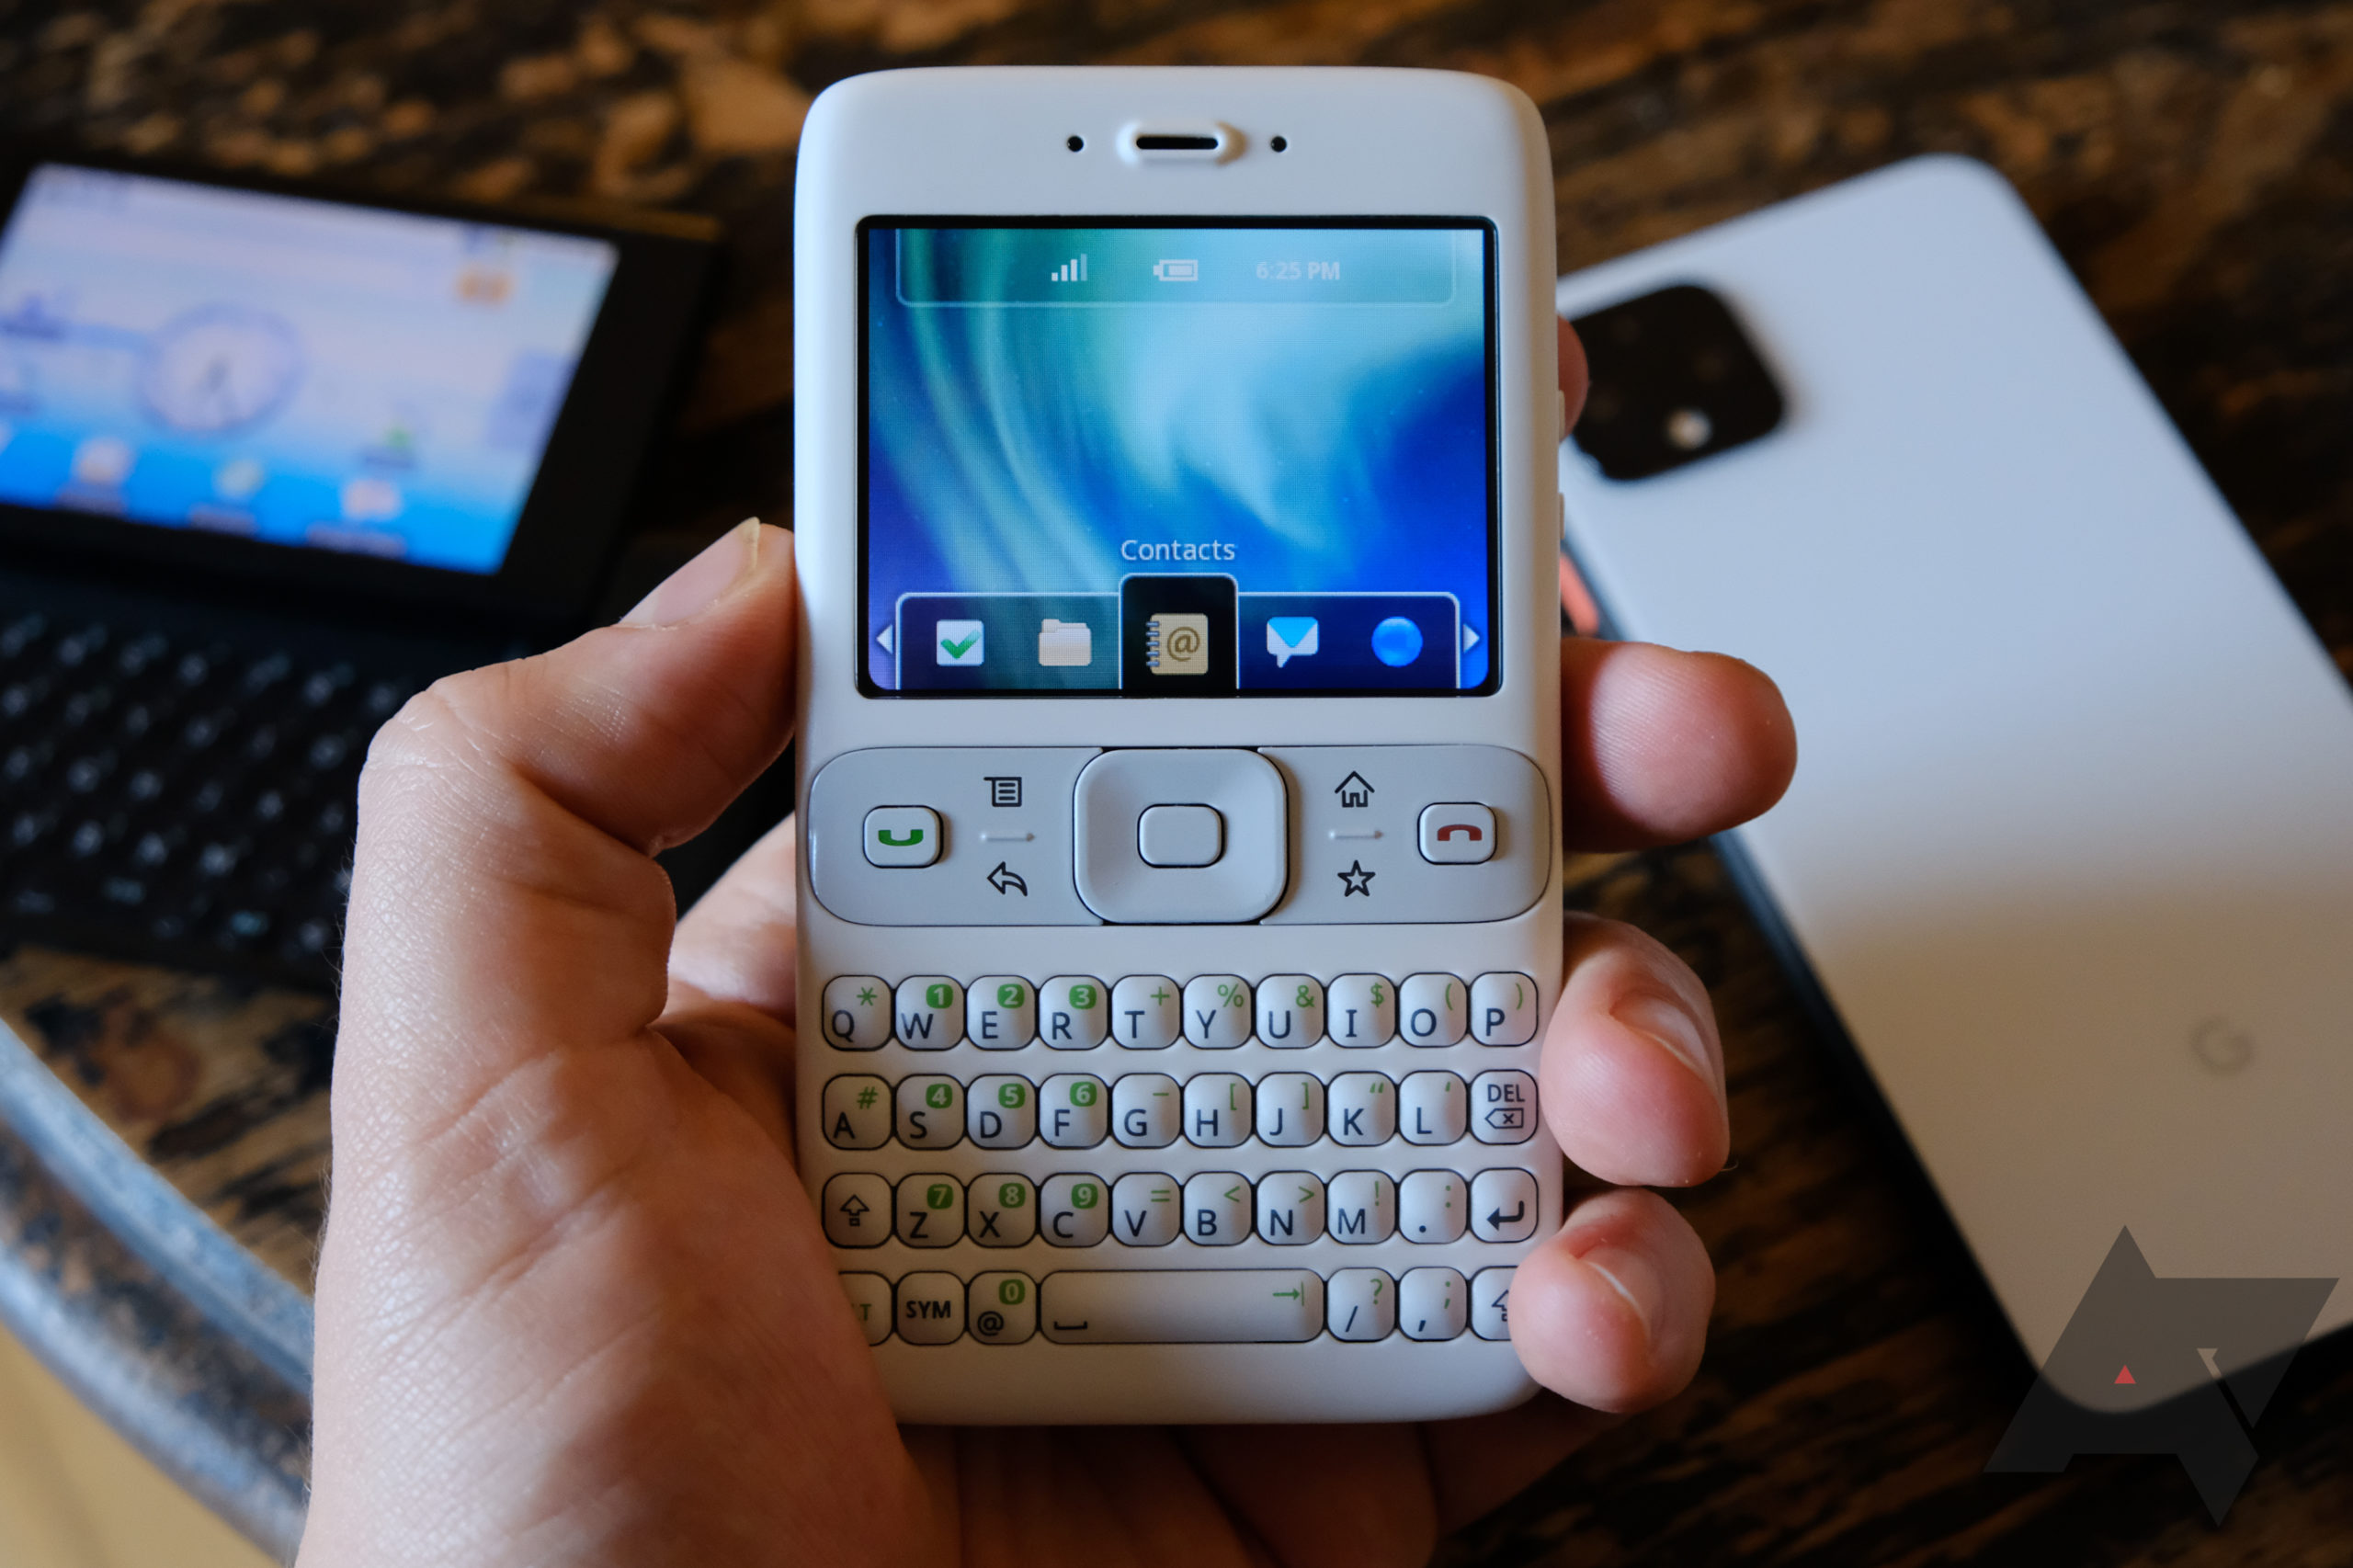 This weird Google prototype was the very first Android phone, and I bought one